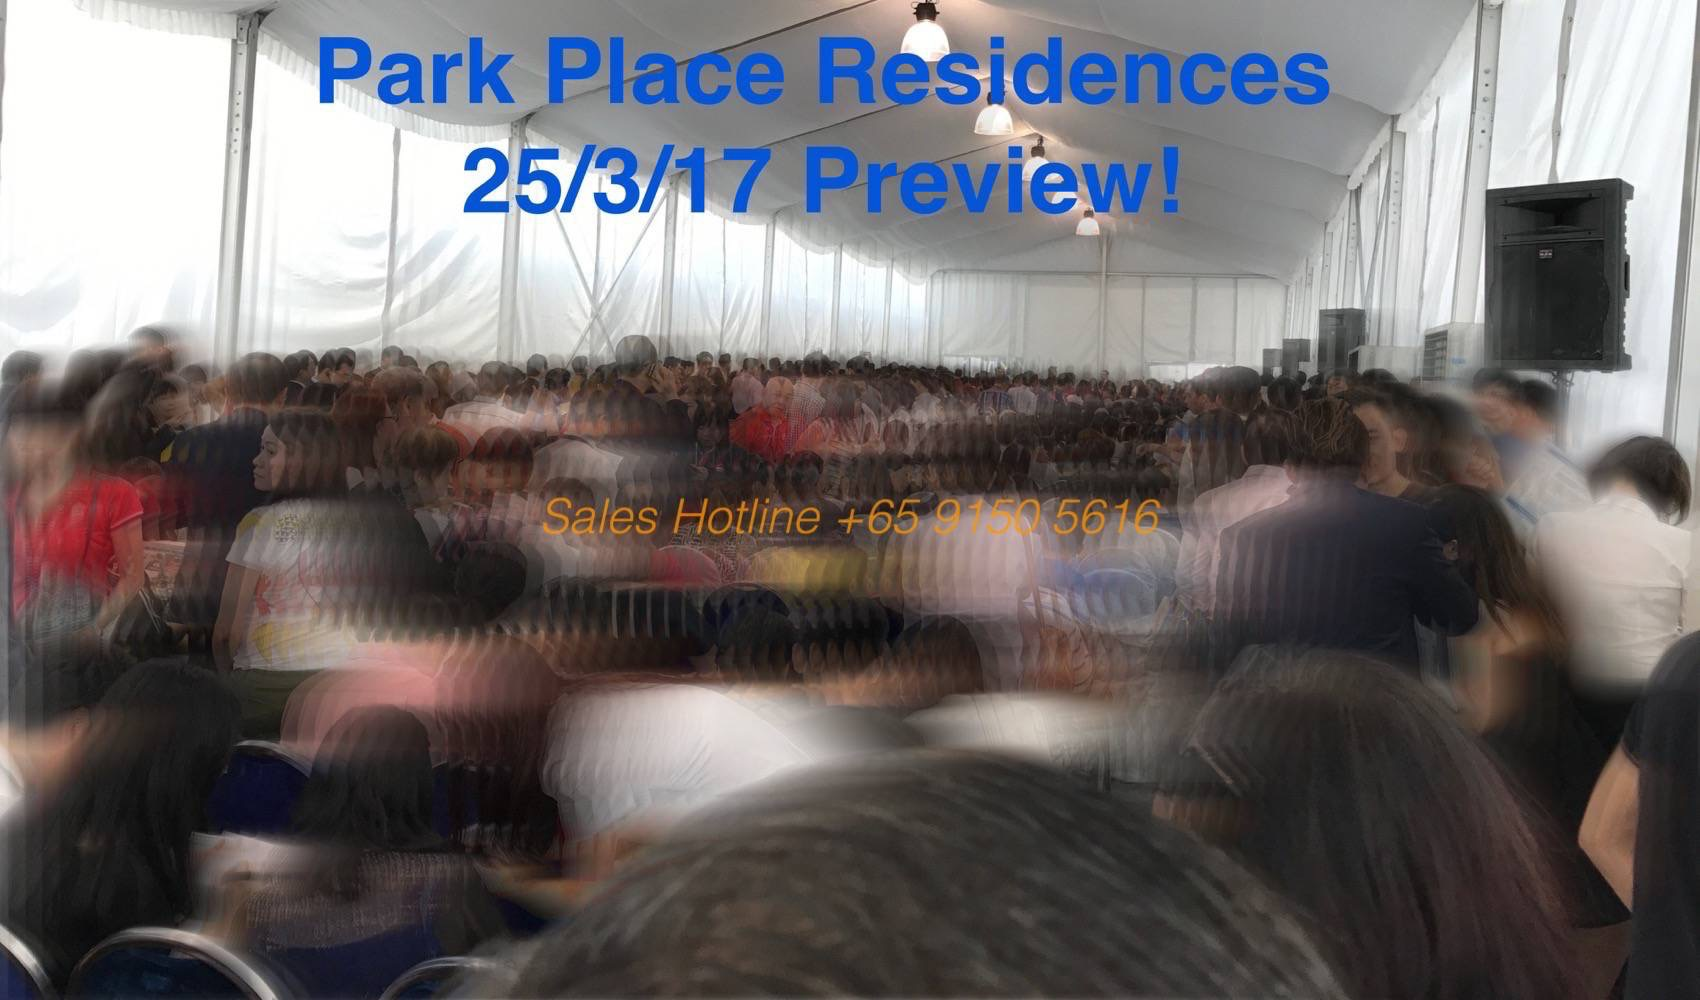 Park Place Residences Preview